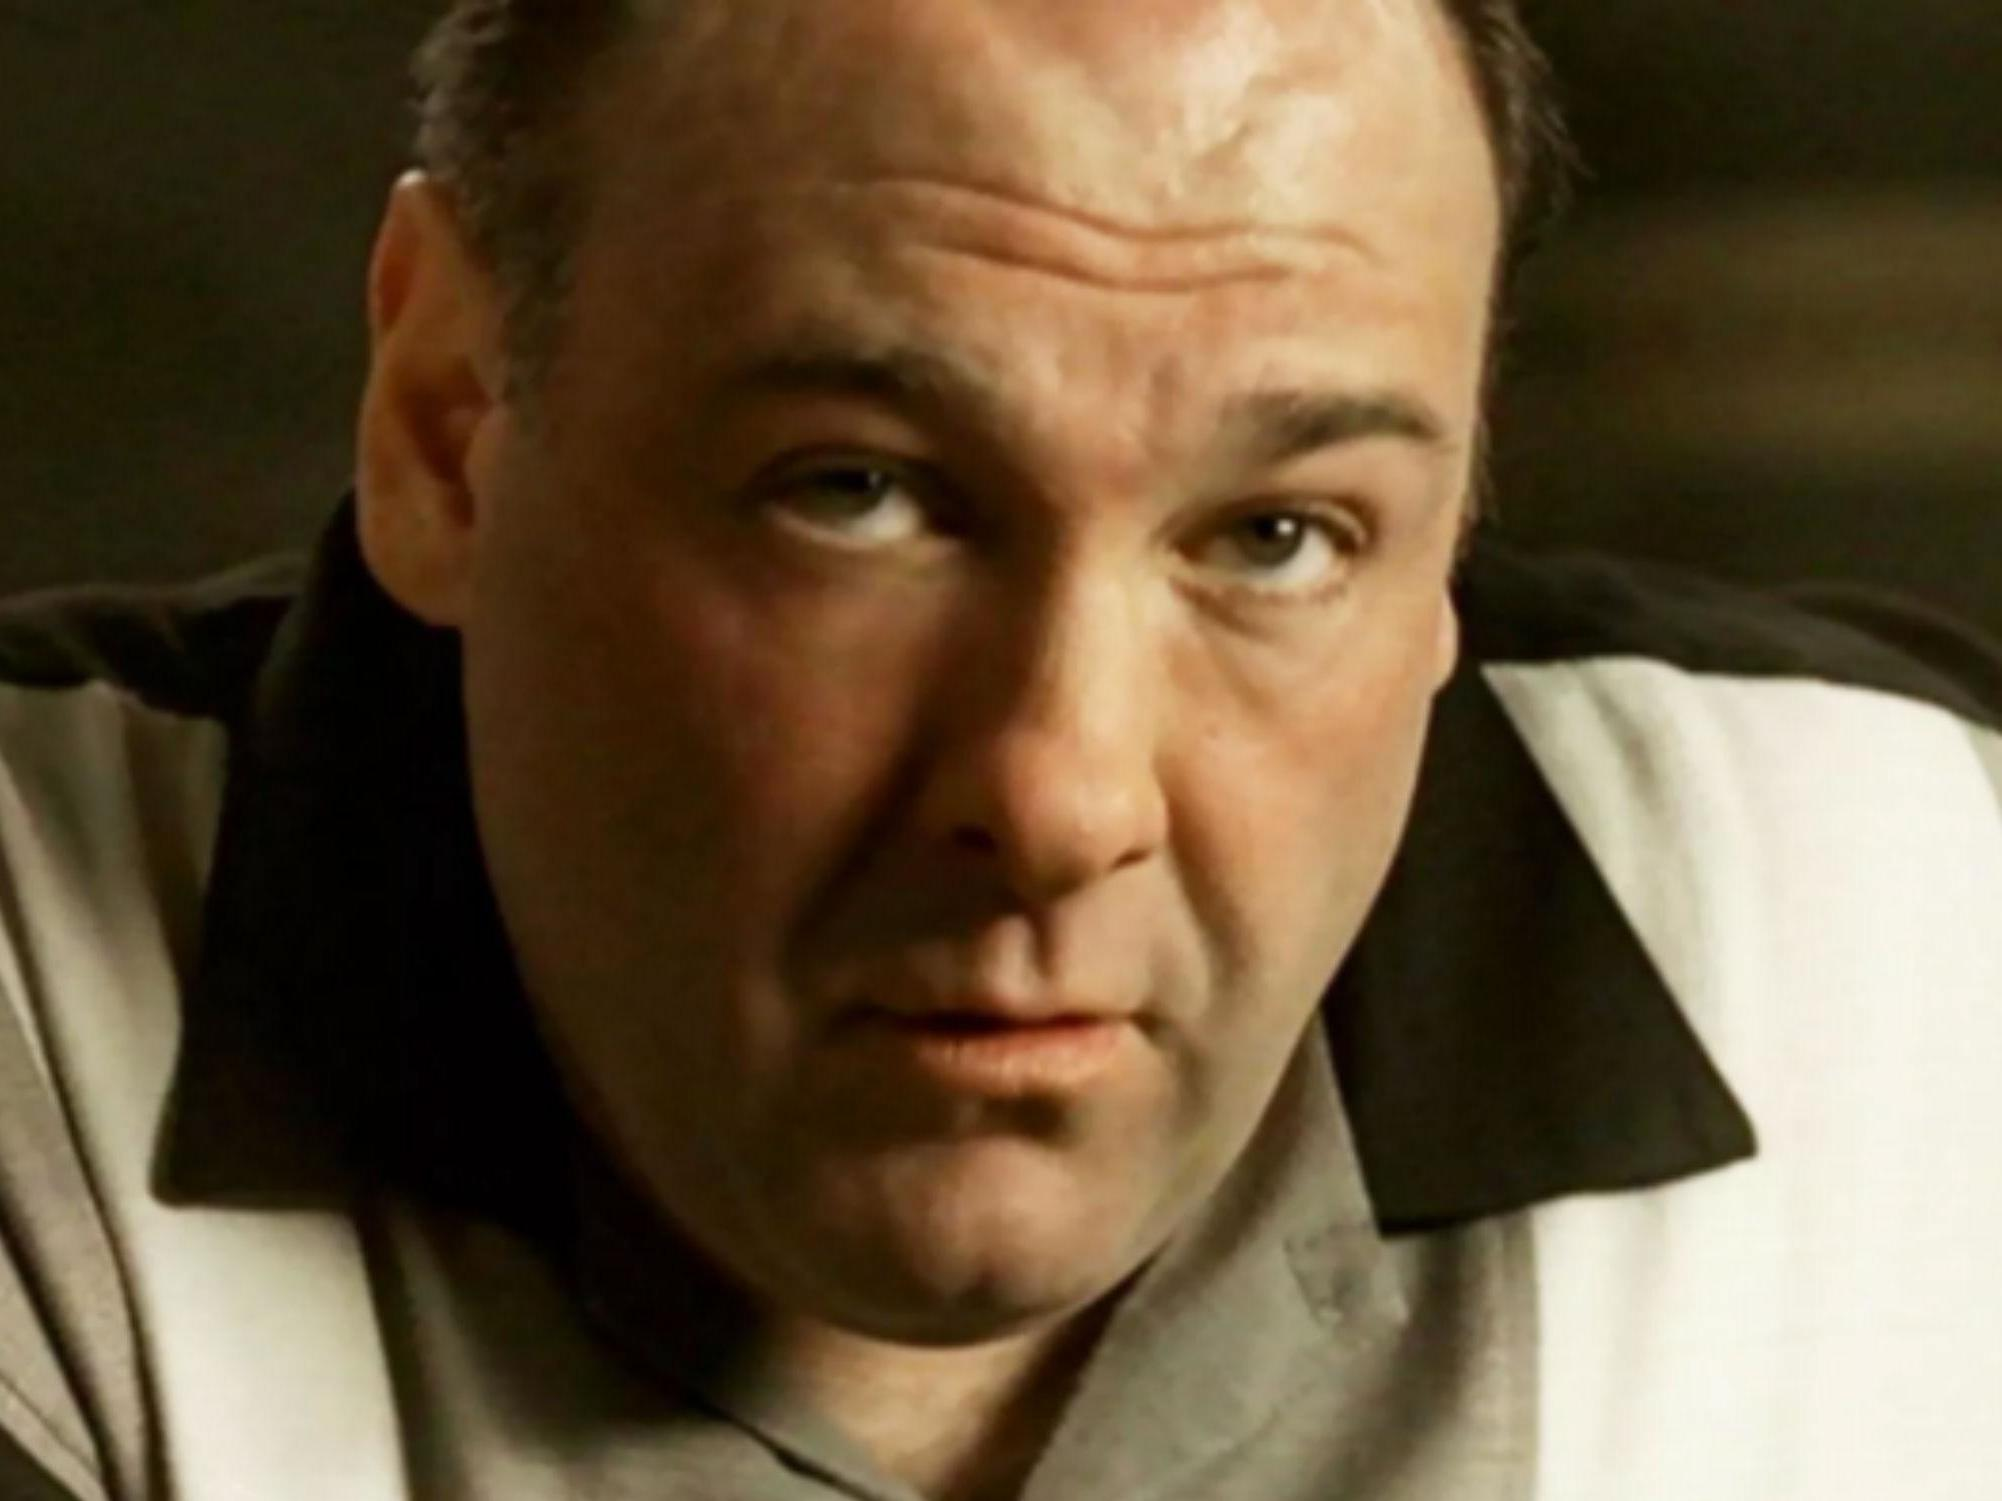 The Sopranos joke that James Gandolfini wanted removed from HBO show